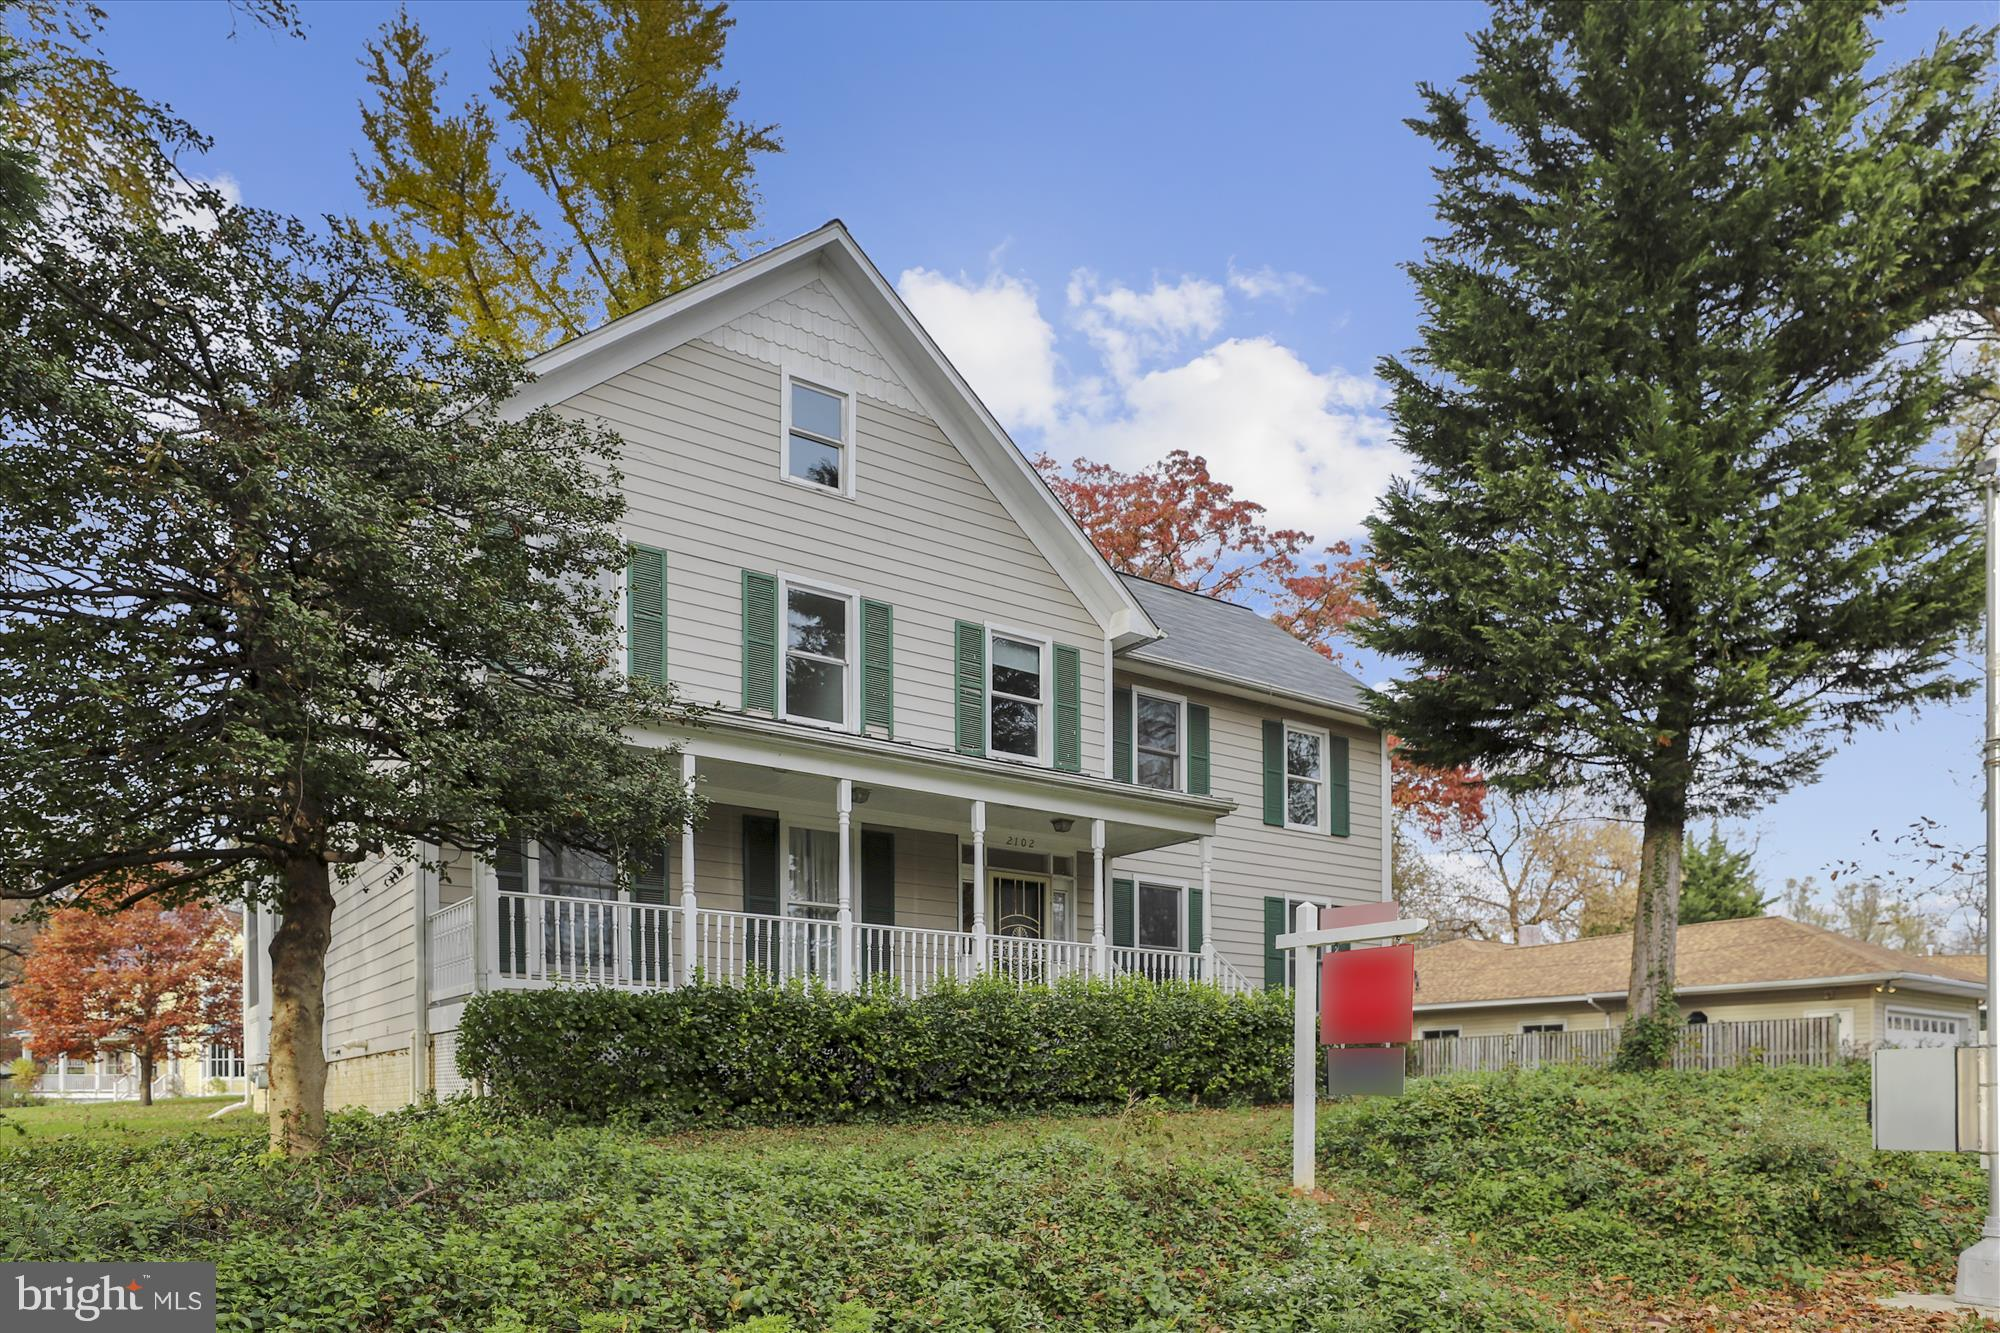 2102 SALISBURY ROAD, Silver Spring, 20910 - SOLD LISTING, MLS # MDMC486374  | RE/MAX of Reading